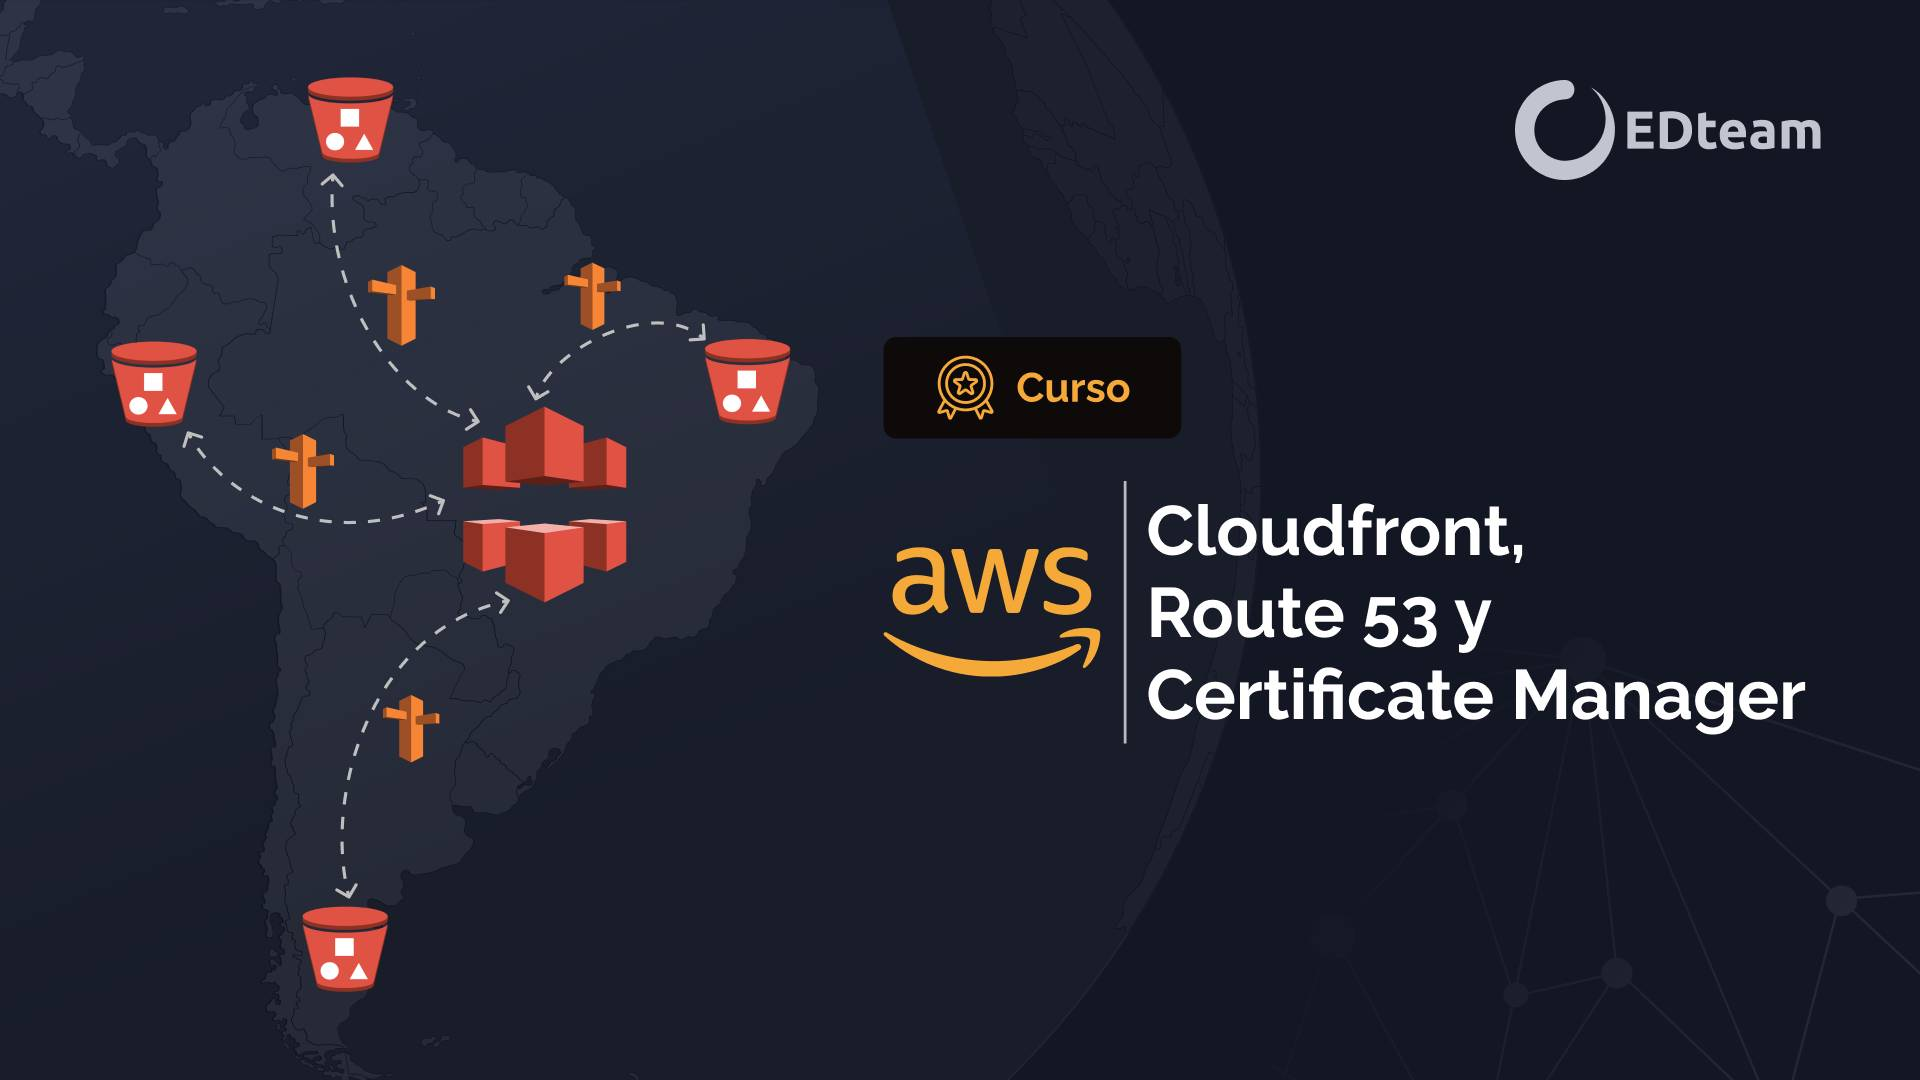 AWS Cloudfront, Route 53 y Certificate Manager